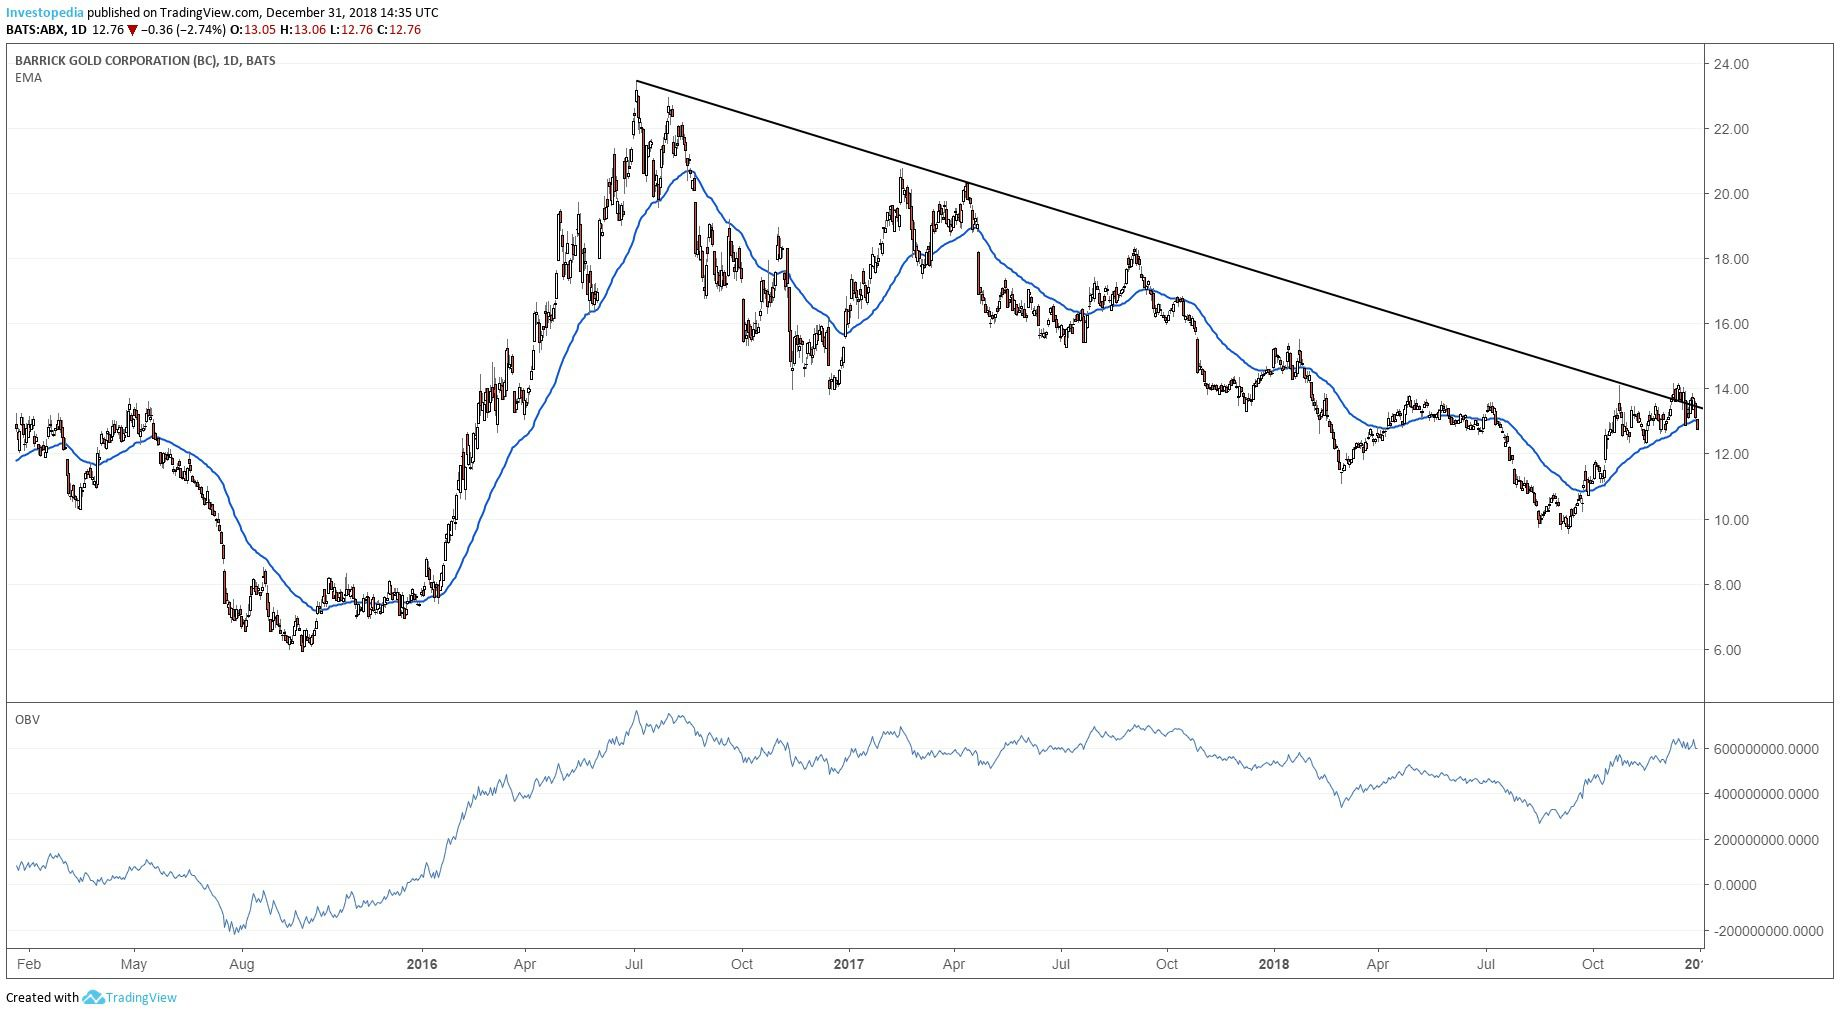 Is It Time to Buy Gold Stocks?